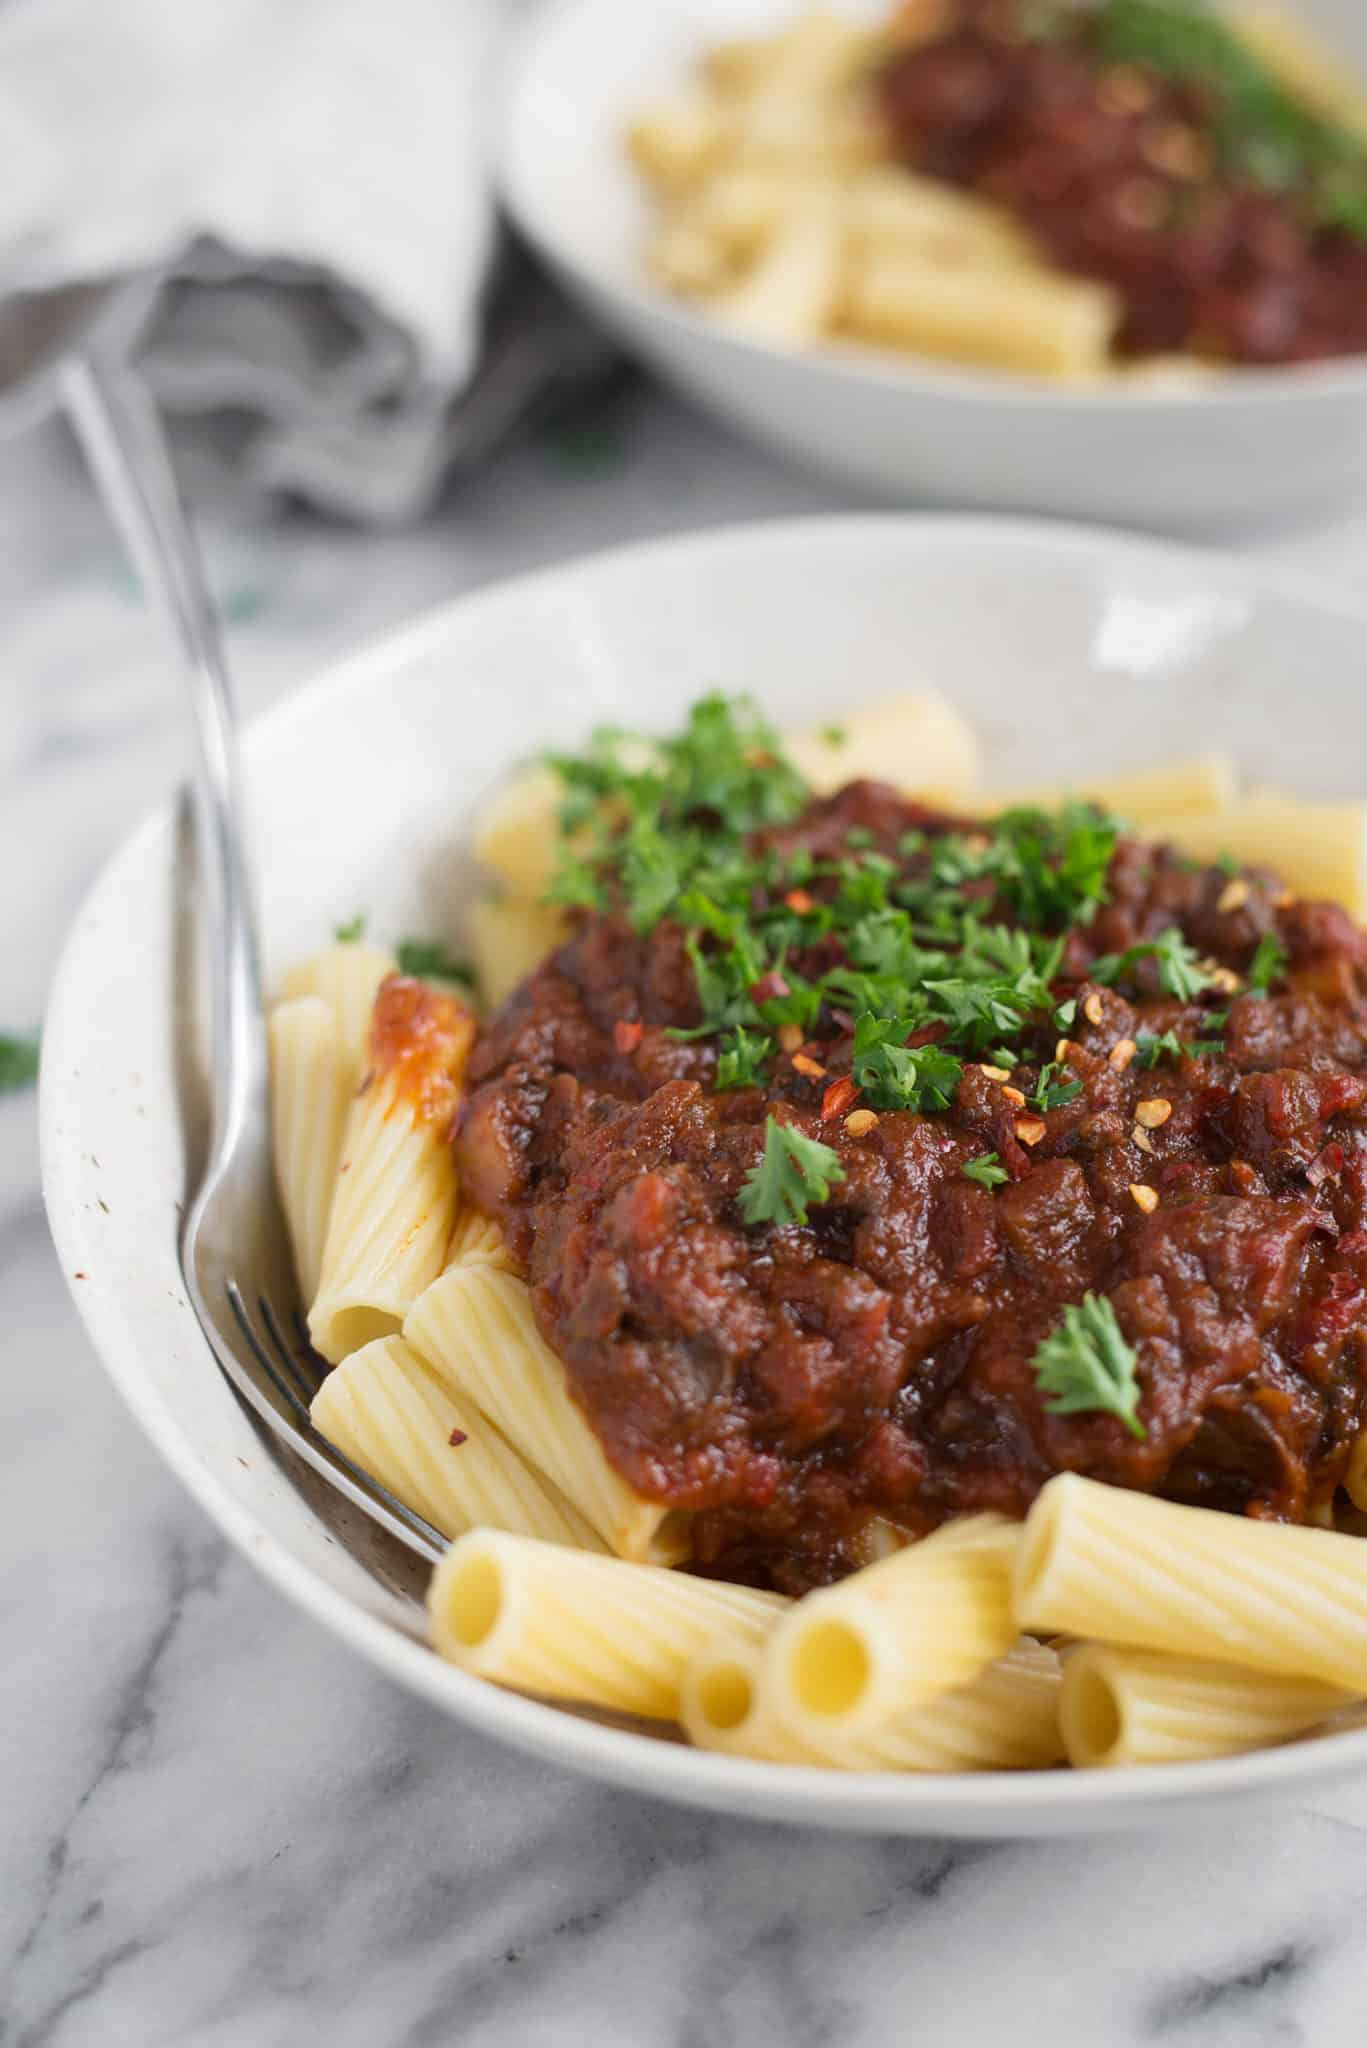 Mushroom Bolognese with Rigatoni - Delish Knowledge